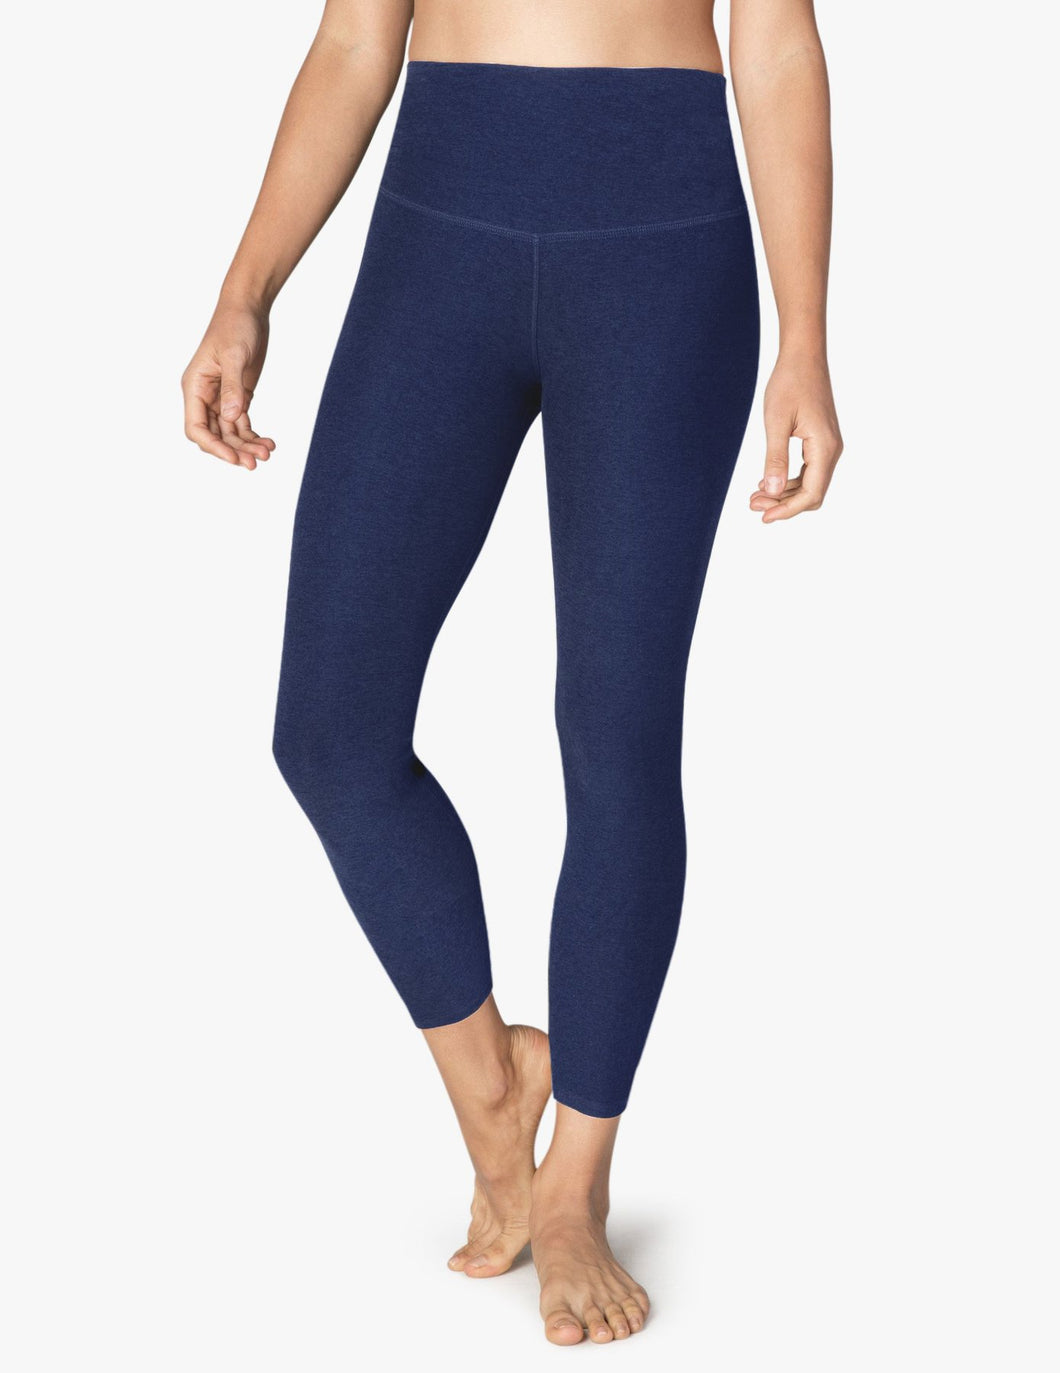 BEYOND YOGA SPACEDYE CAUGHT IN THE MIDI HIGH WAISTED LEGGING NOCTURNAL NAVY